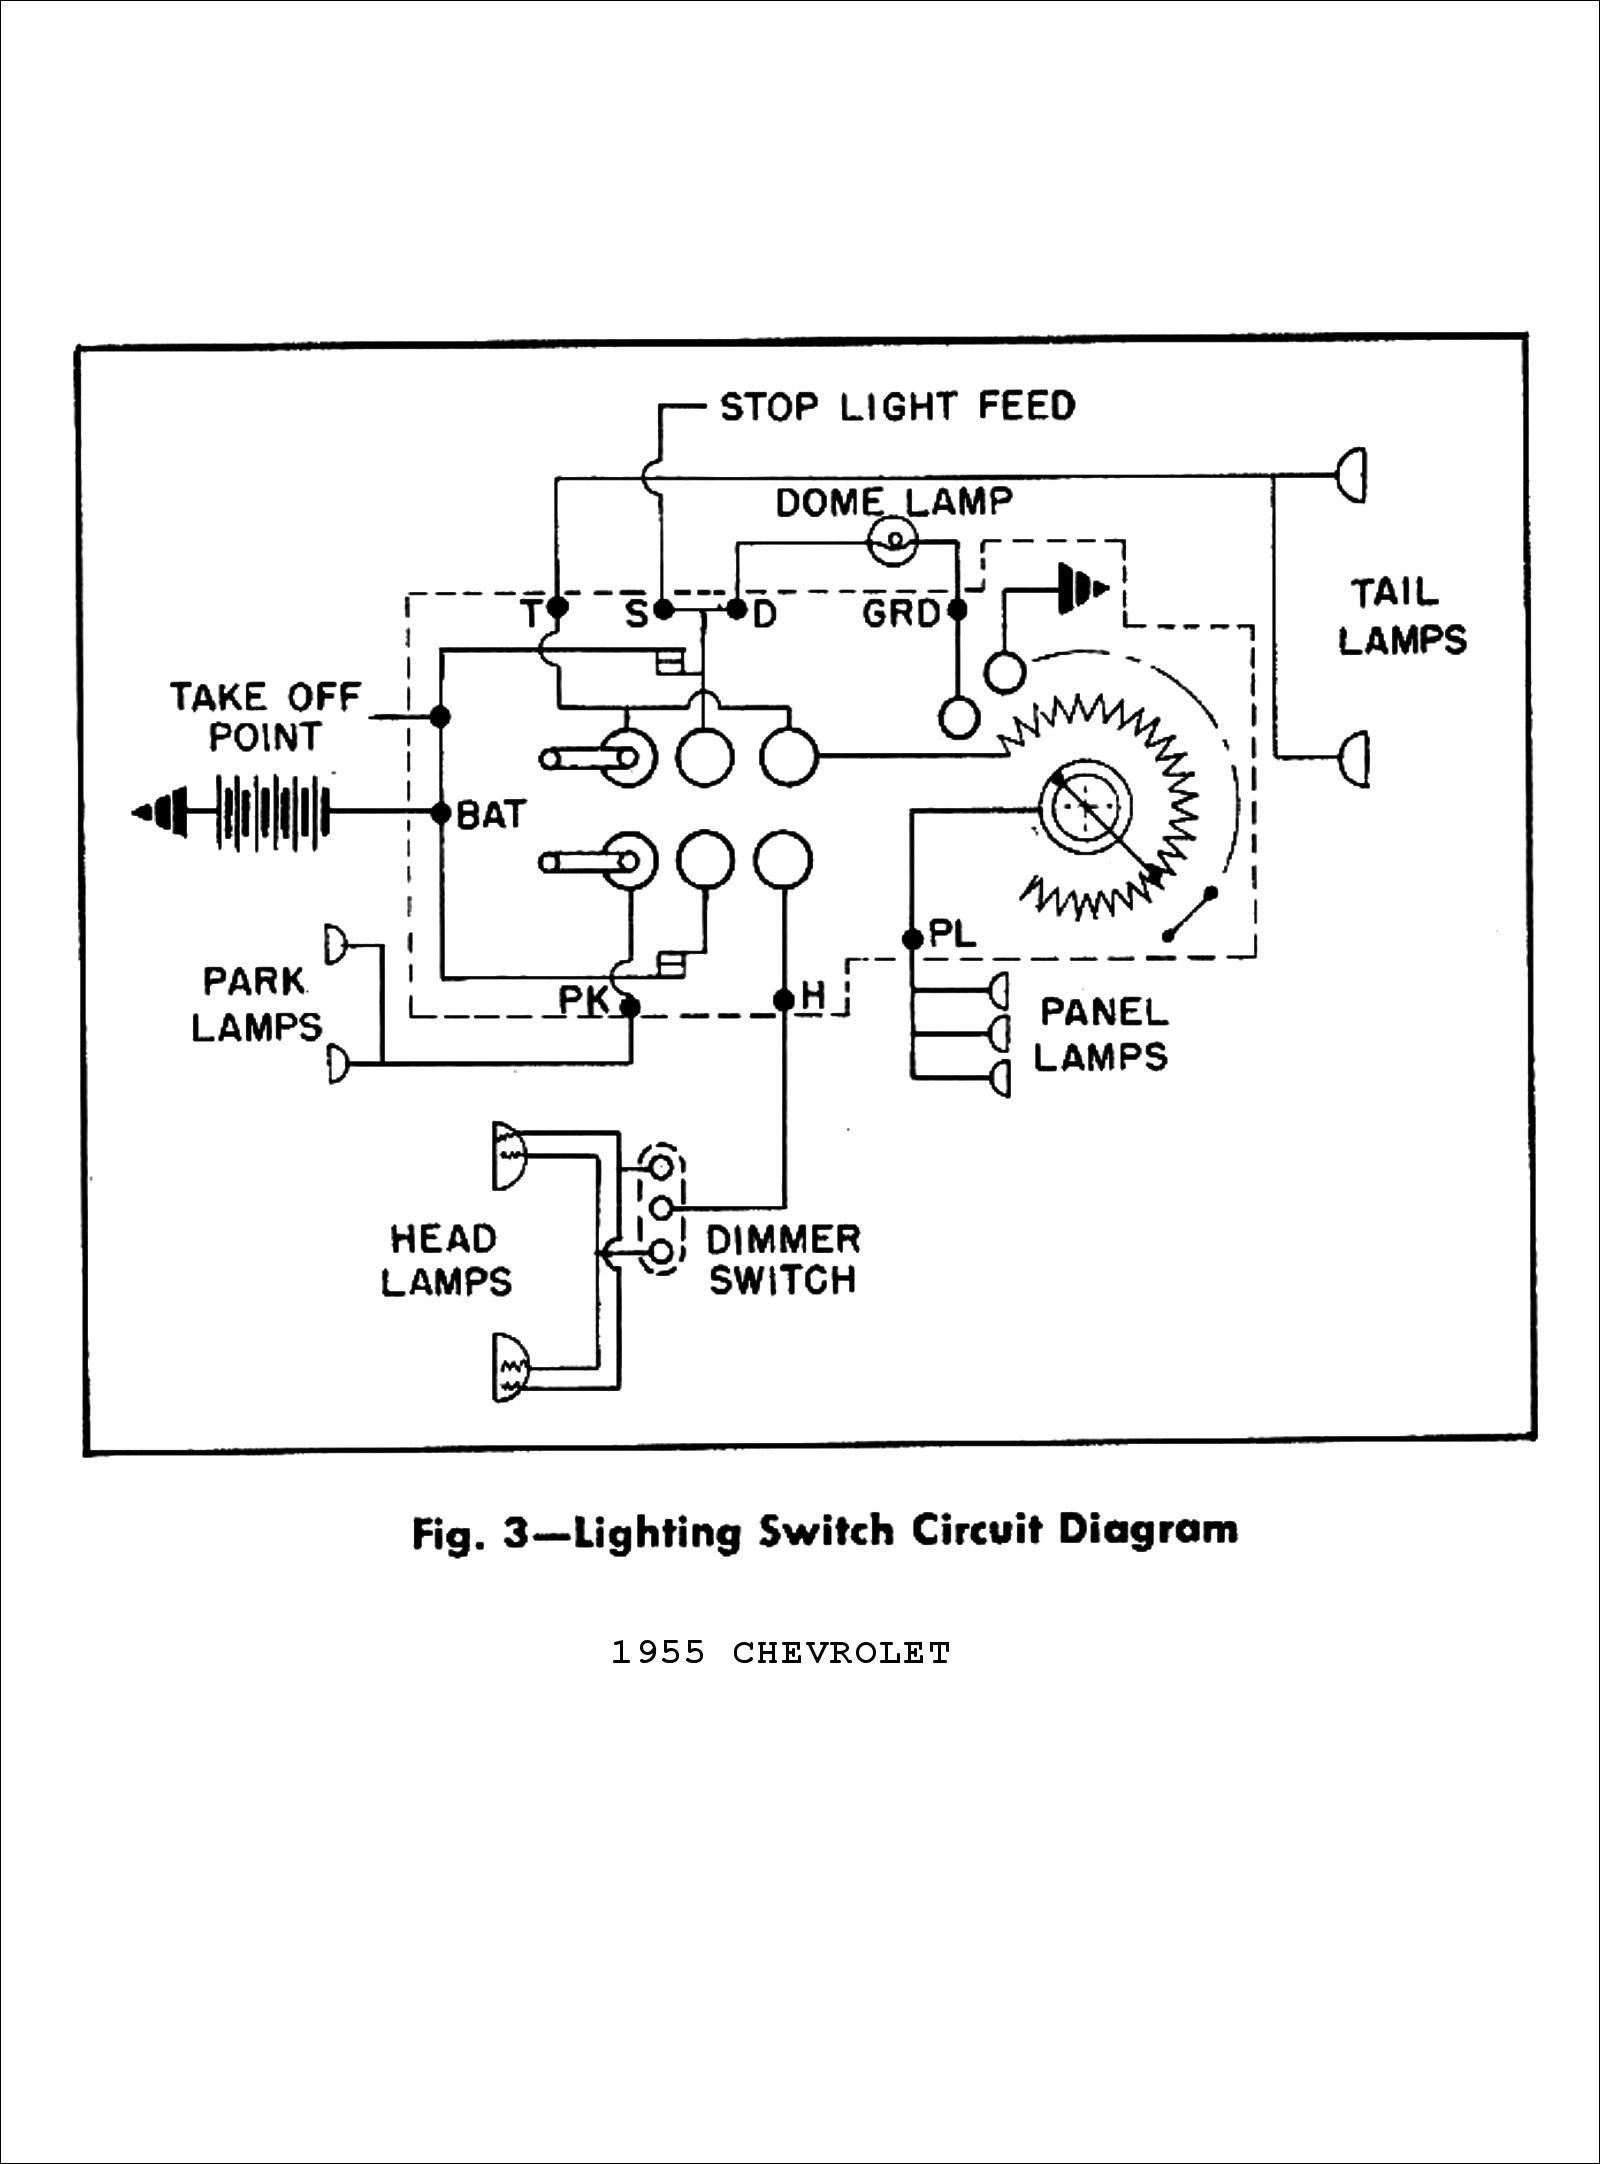 Wiring Diagram For Universal Ignition Switch Inspirationa 16 Unique Ignition Switch Wiring Diagram